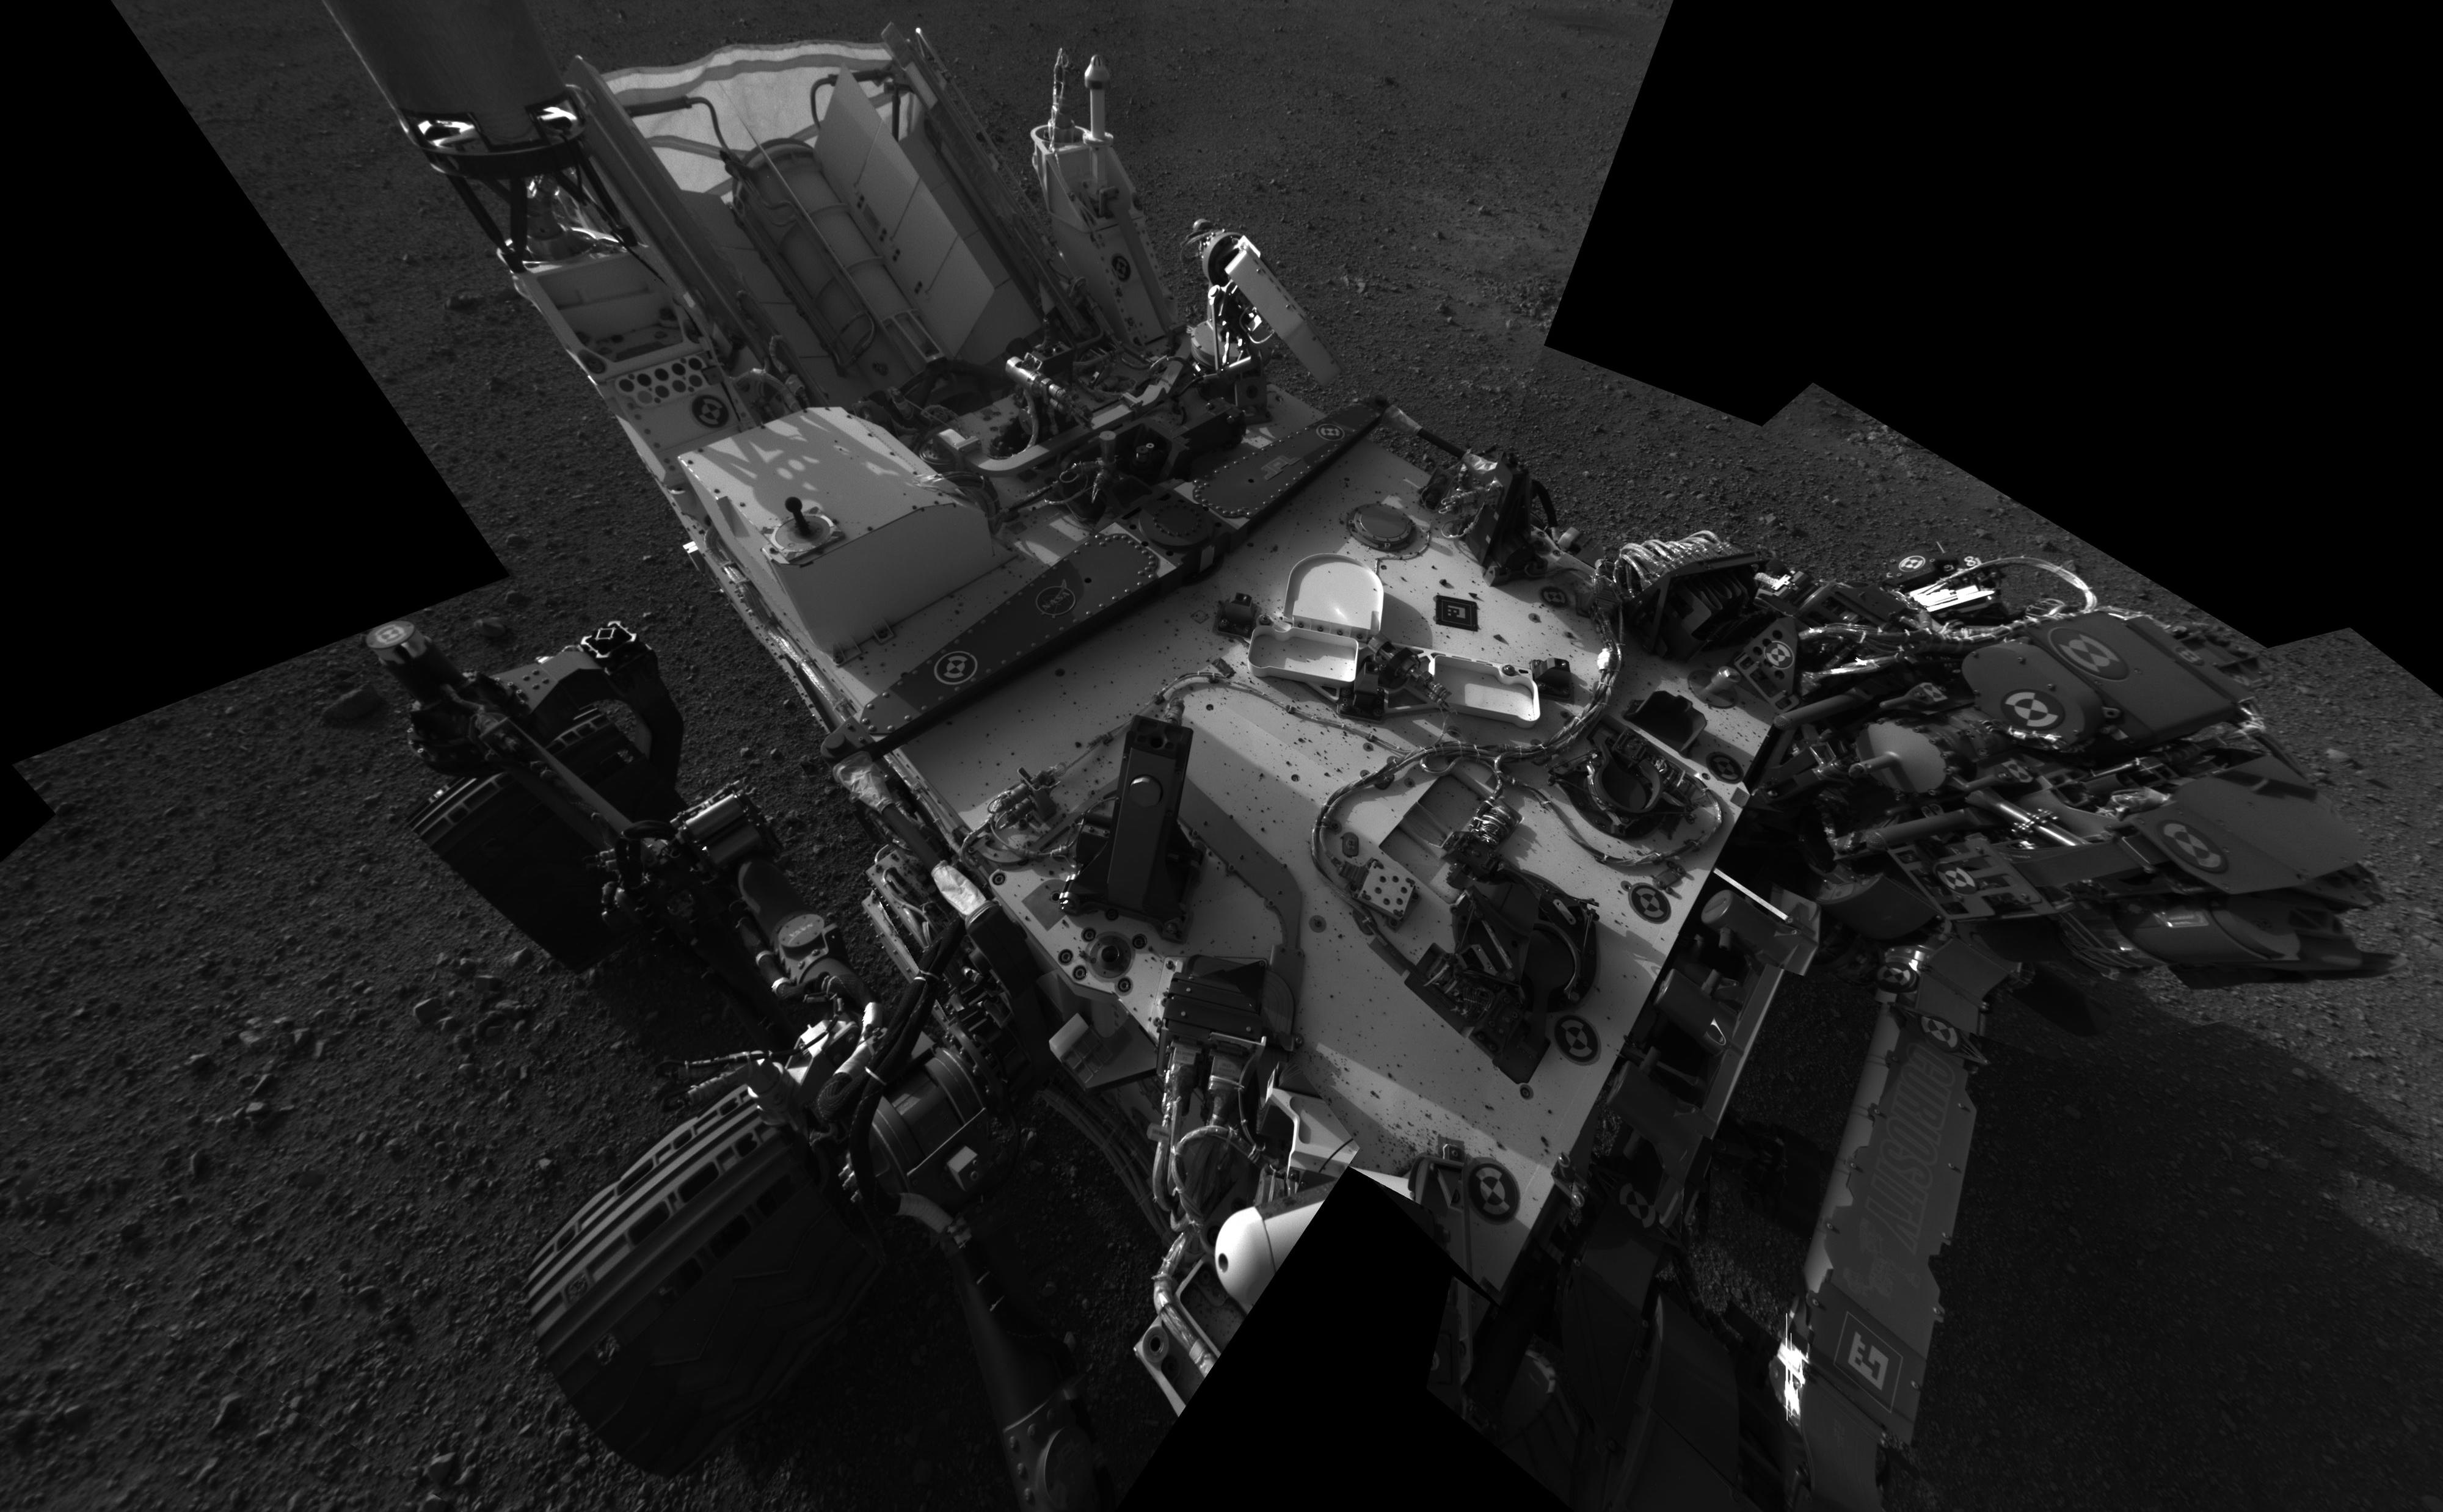 This full-resolution self-portrait shows the deck of NASA's Curiosity rover from the rover's Navigation camera.